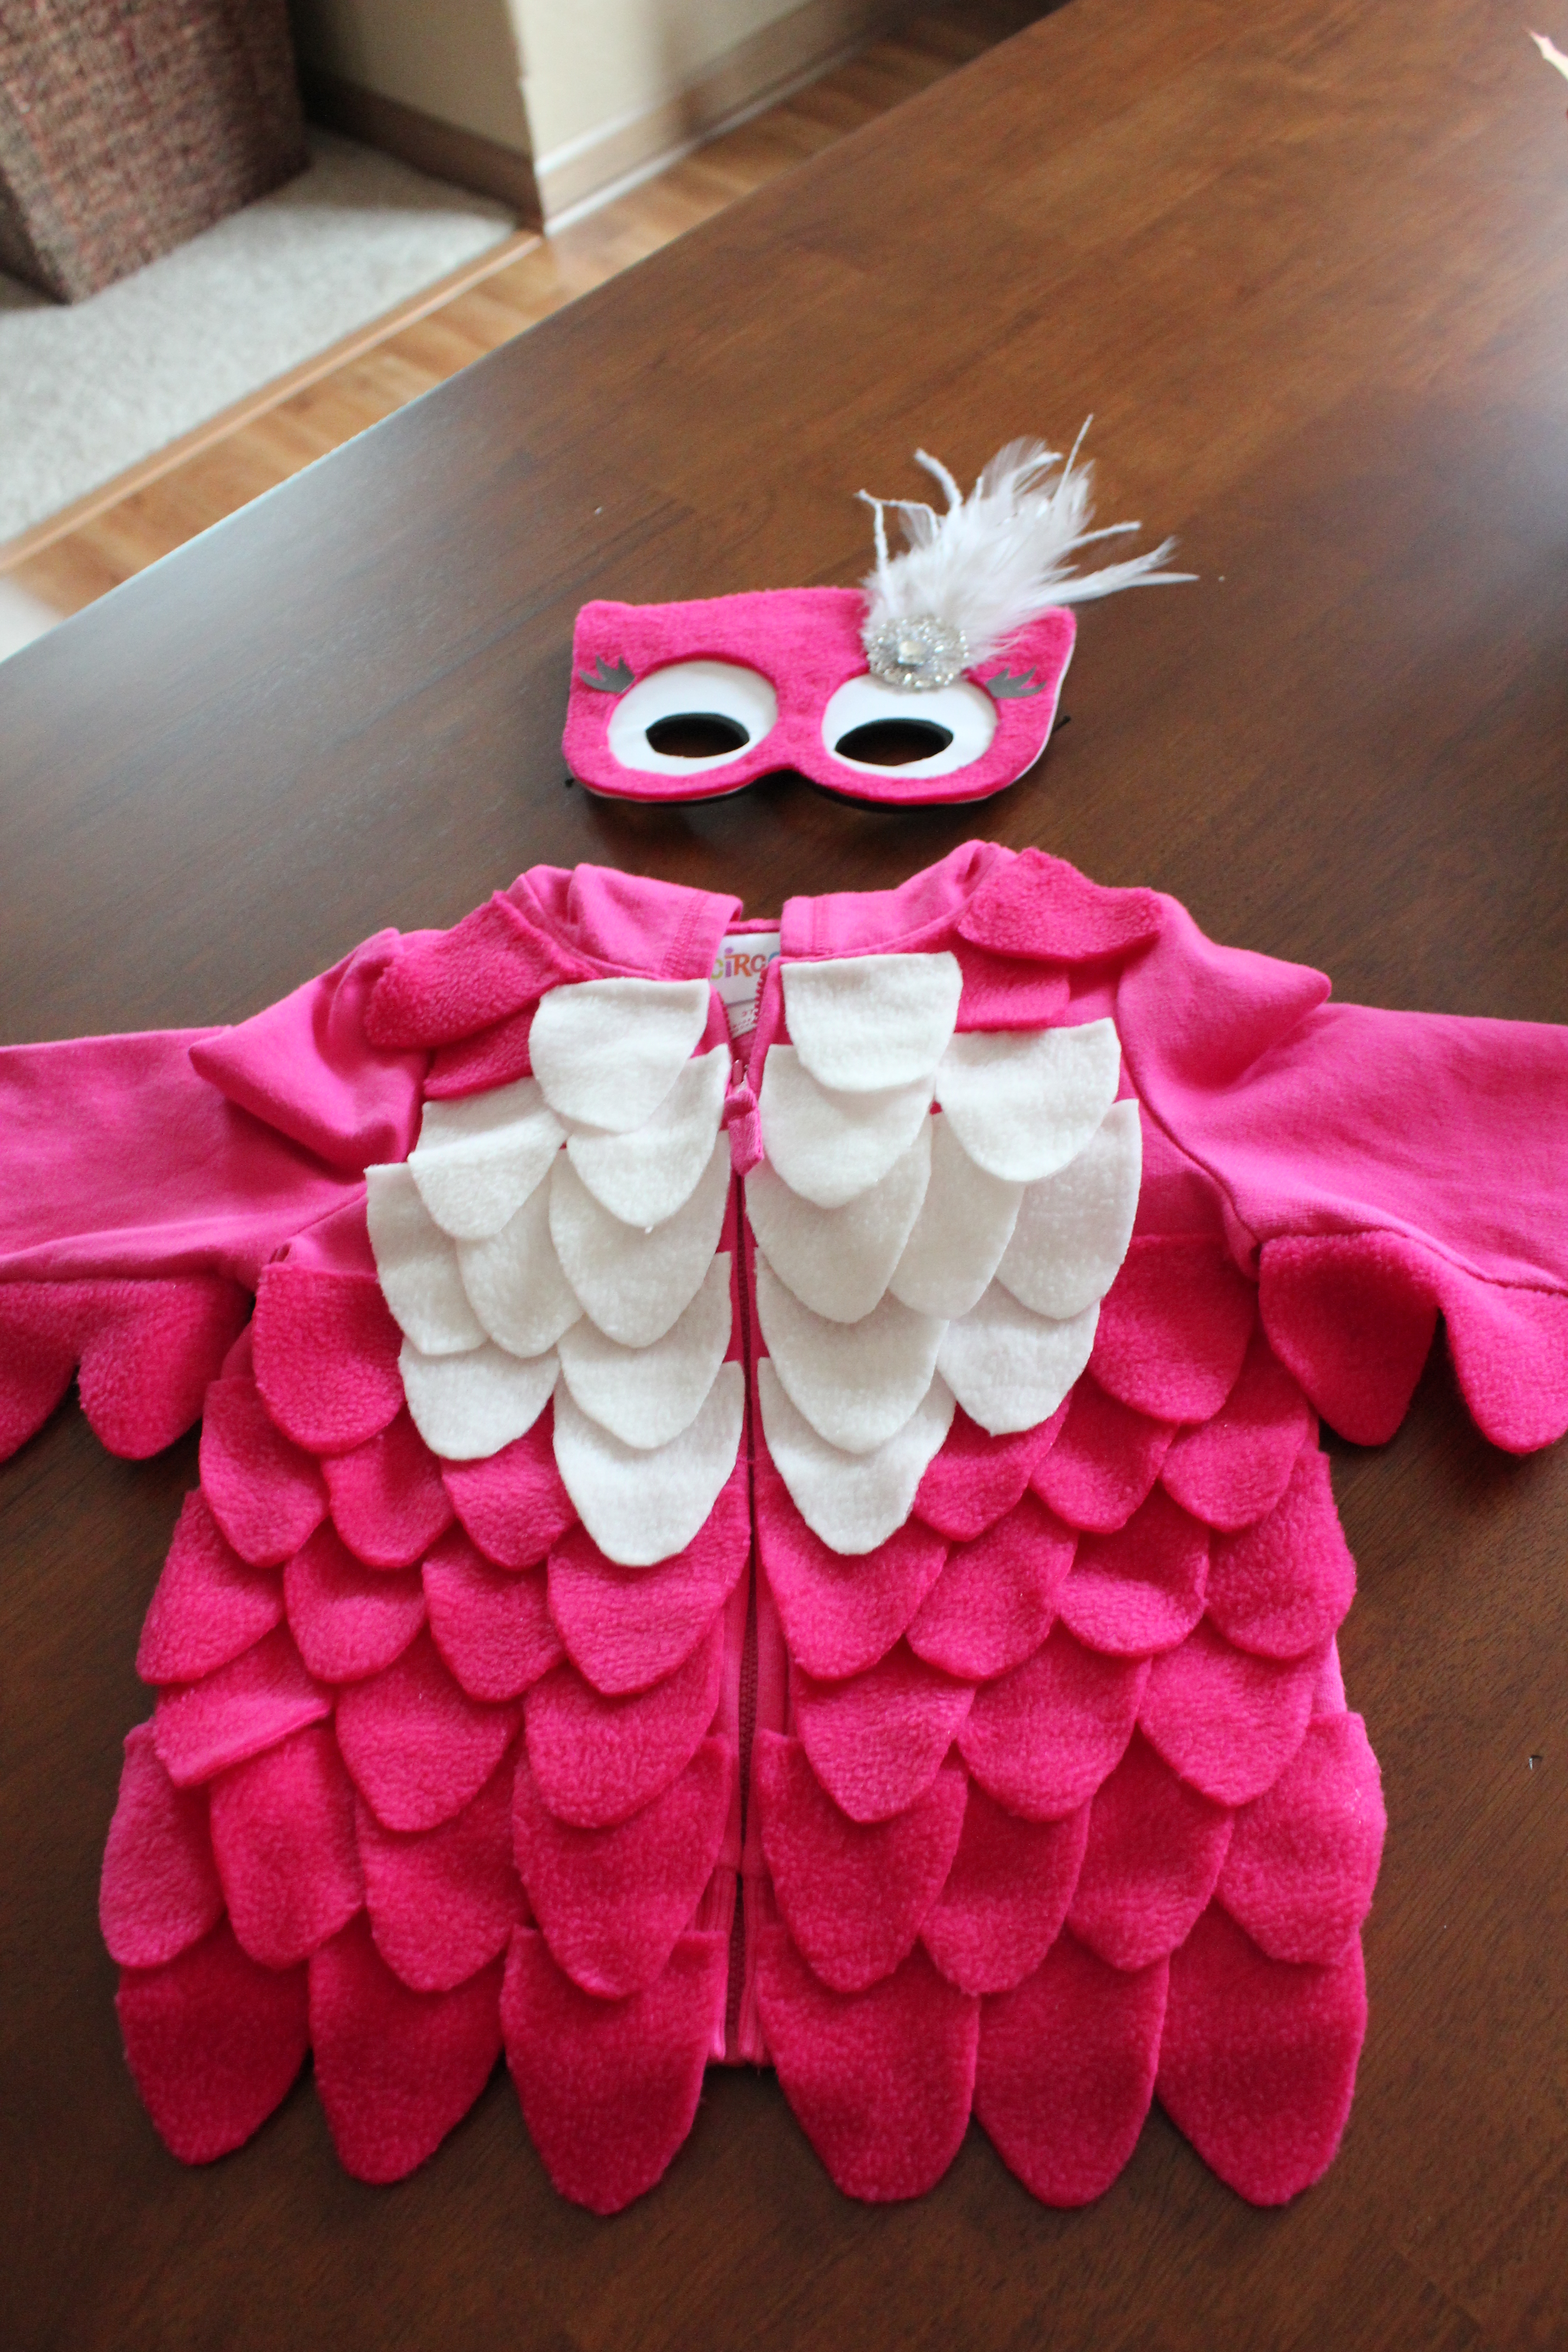 Diy owl costume simply being abby i found a blog that had a homemade owl costume and partially replicated it you can find her post here but i have included my own directions and tips solutioingenieria Image collections